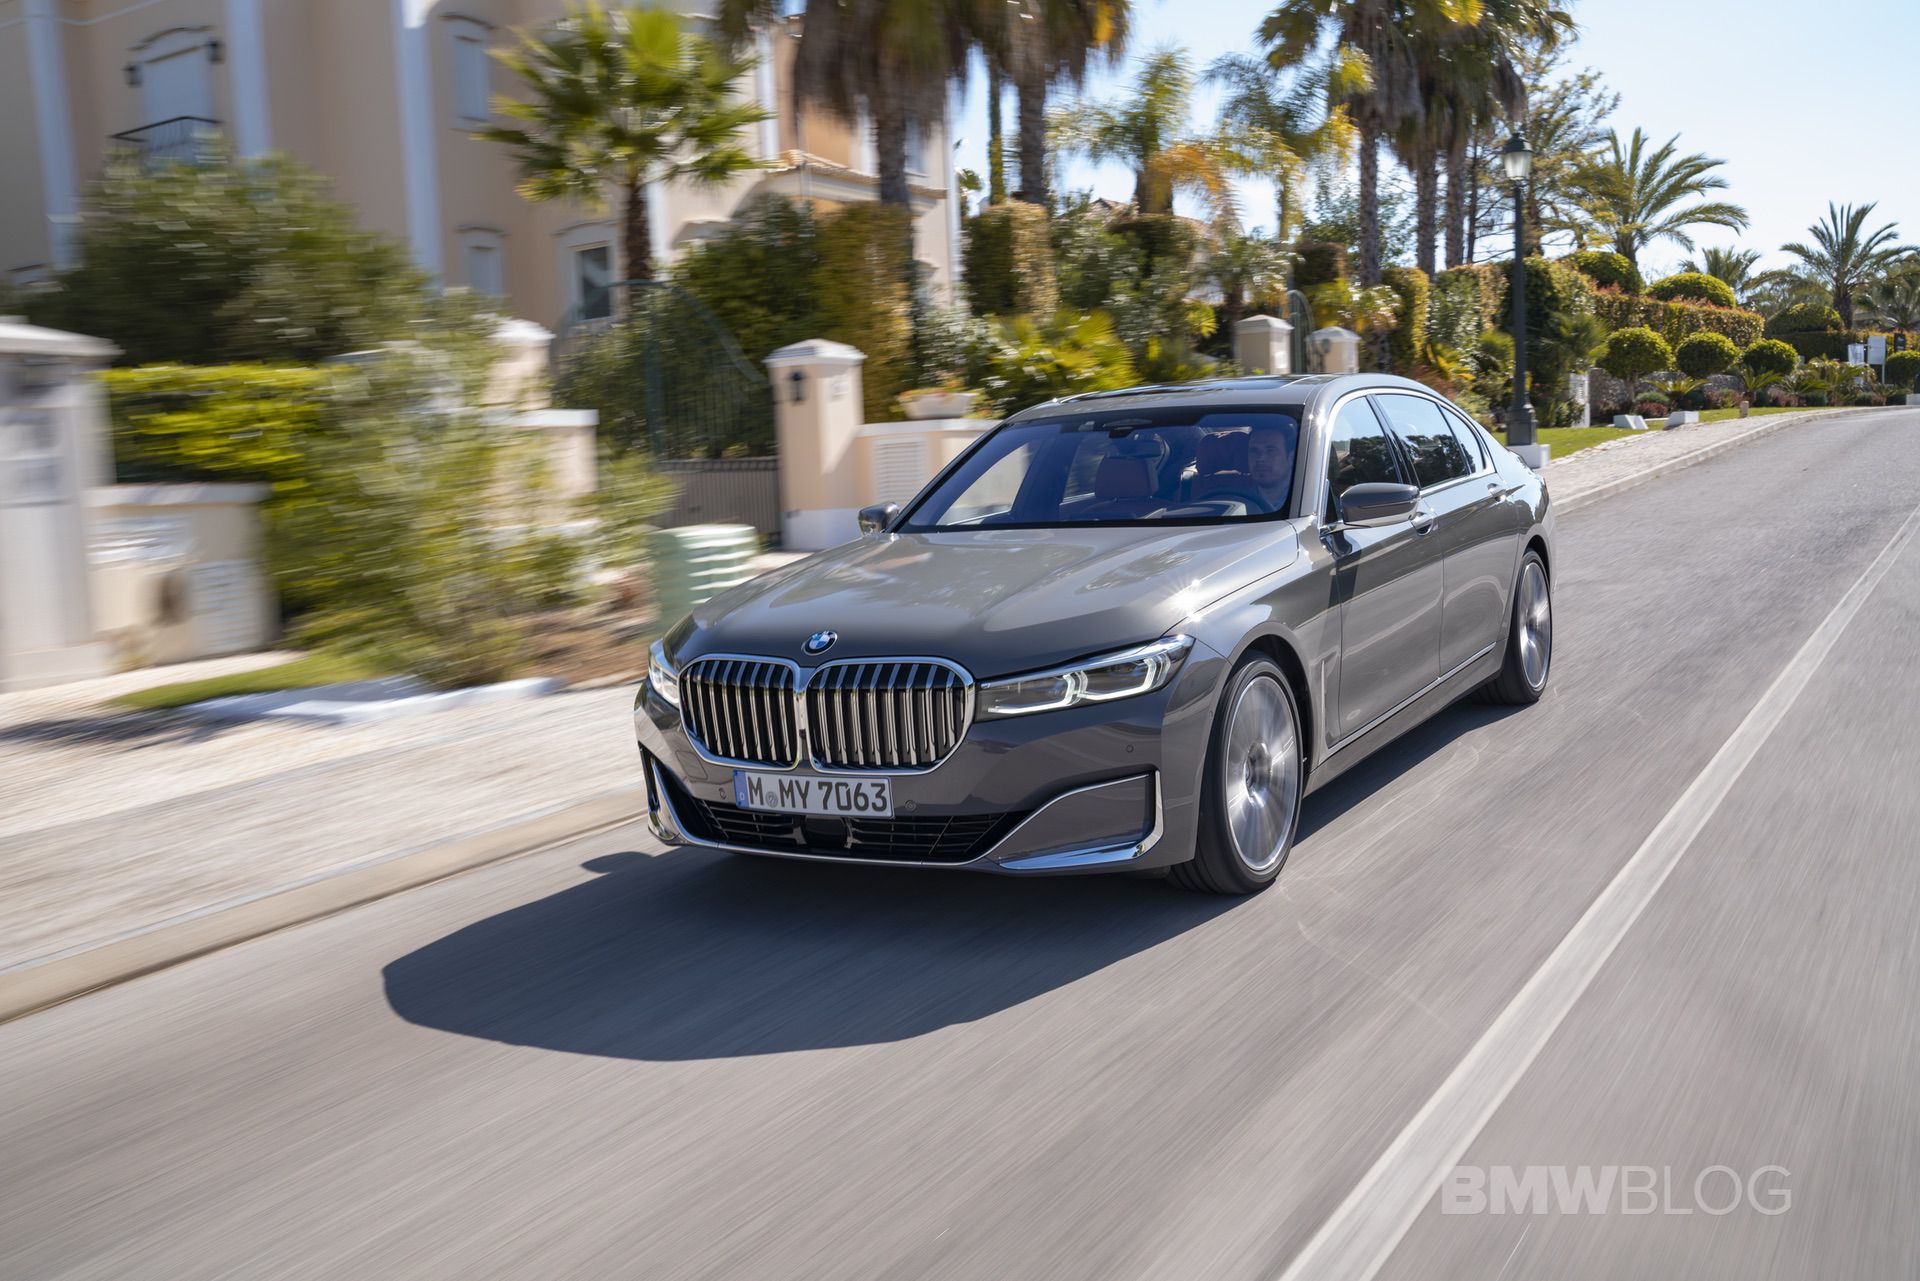 BMW 750Li xDrive test drive 03 1